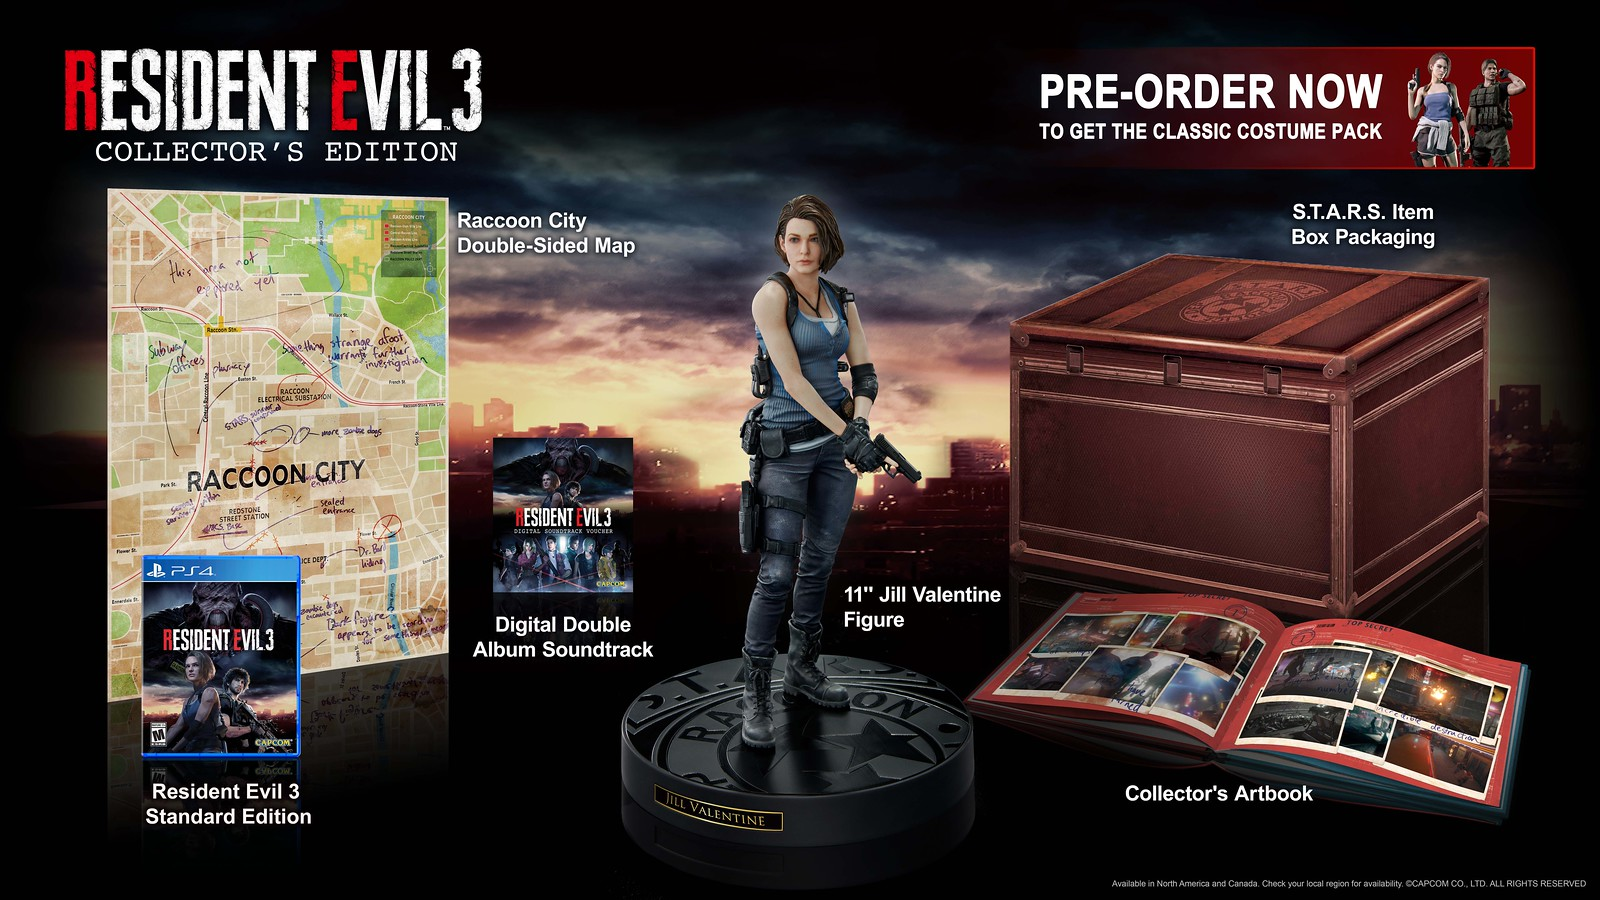 Resident Evil 3 - Collector's Edition